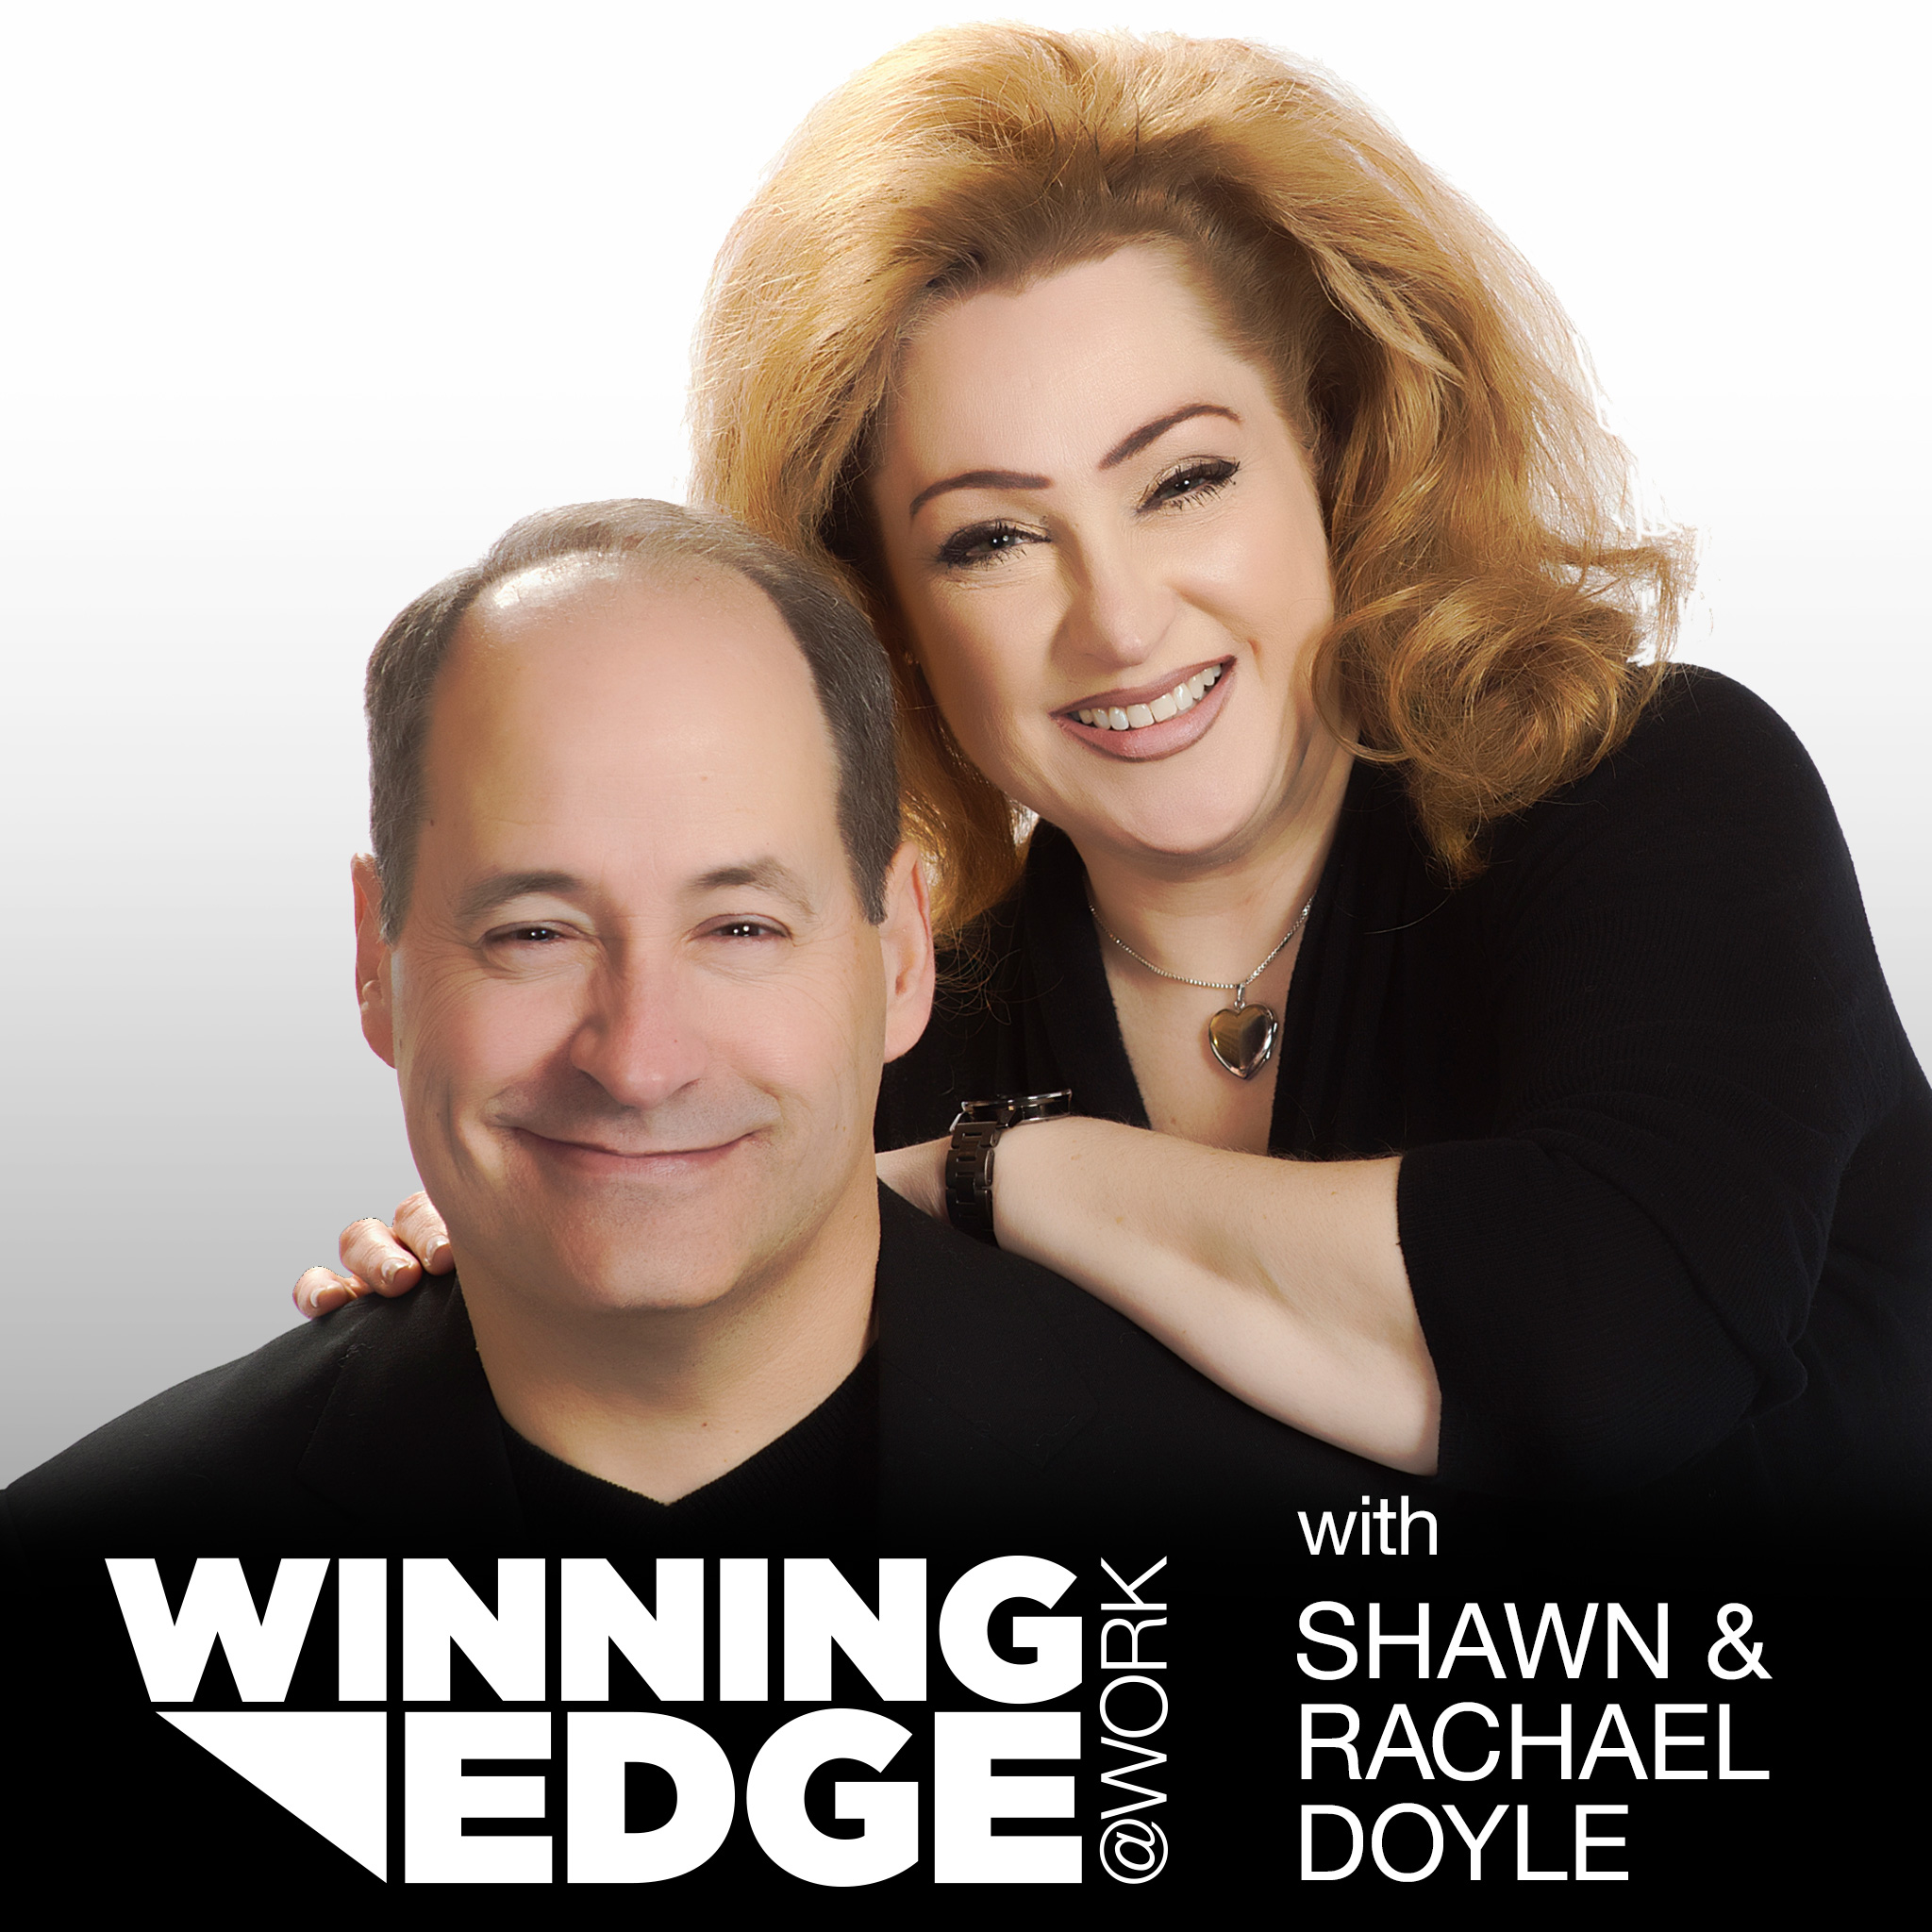 Are you listening to the Winning Edge@Work podcast with Shawn and Rachael Doyle?